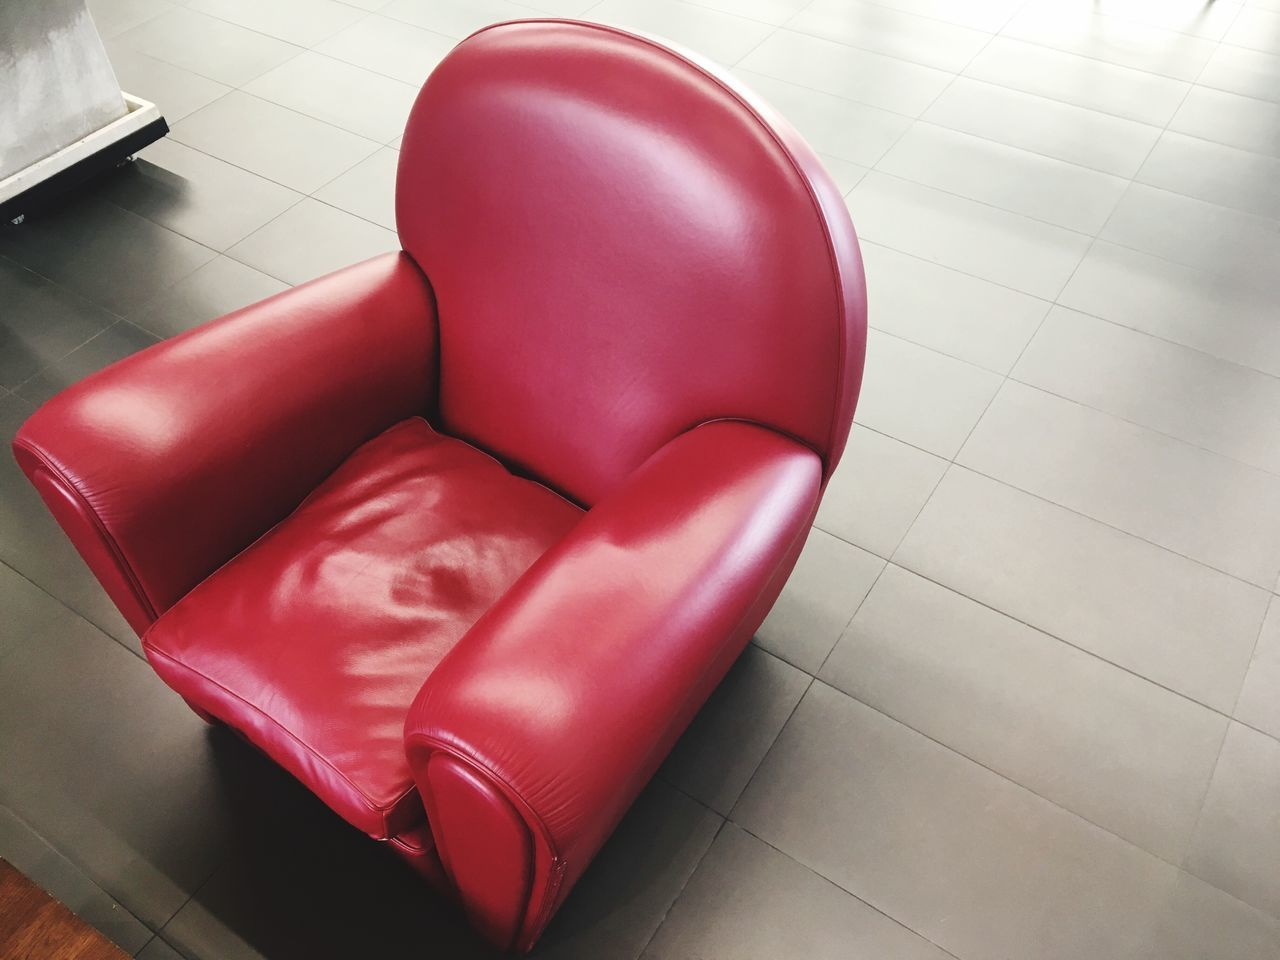 tiled floor, indoors, high angle view, no people, chair, home interior, seat, red, close-up, day, toilet bowl